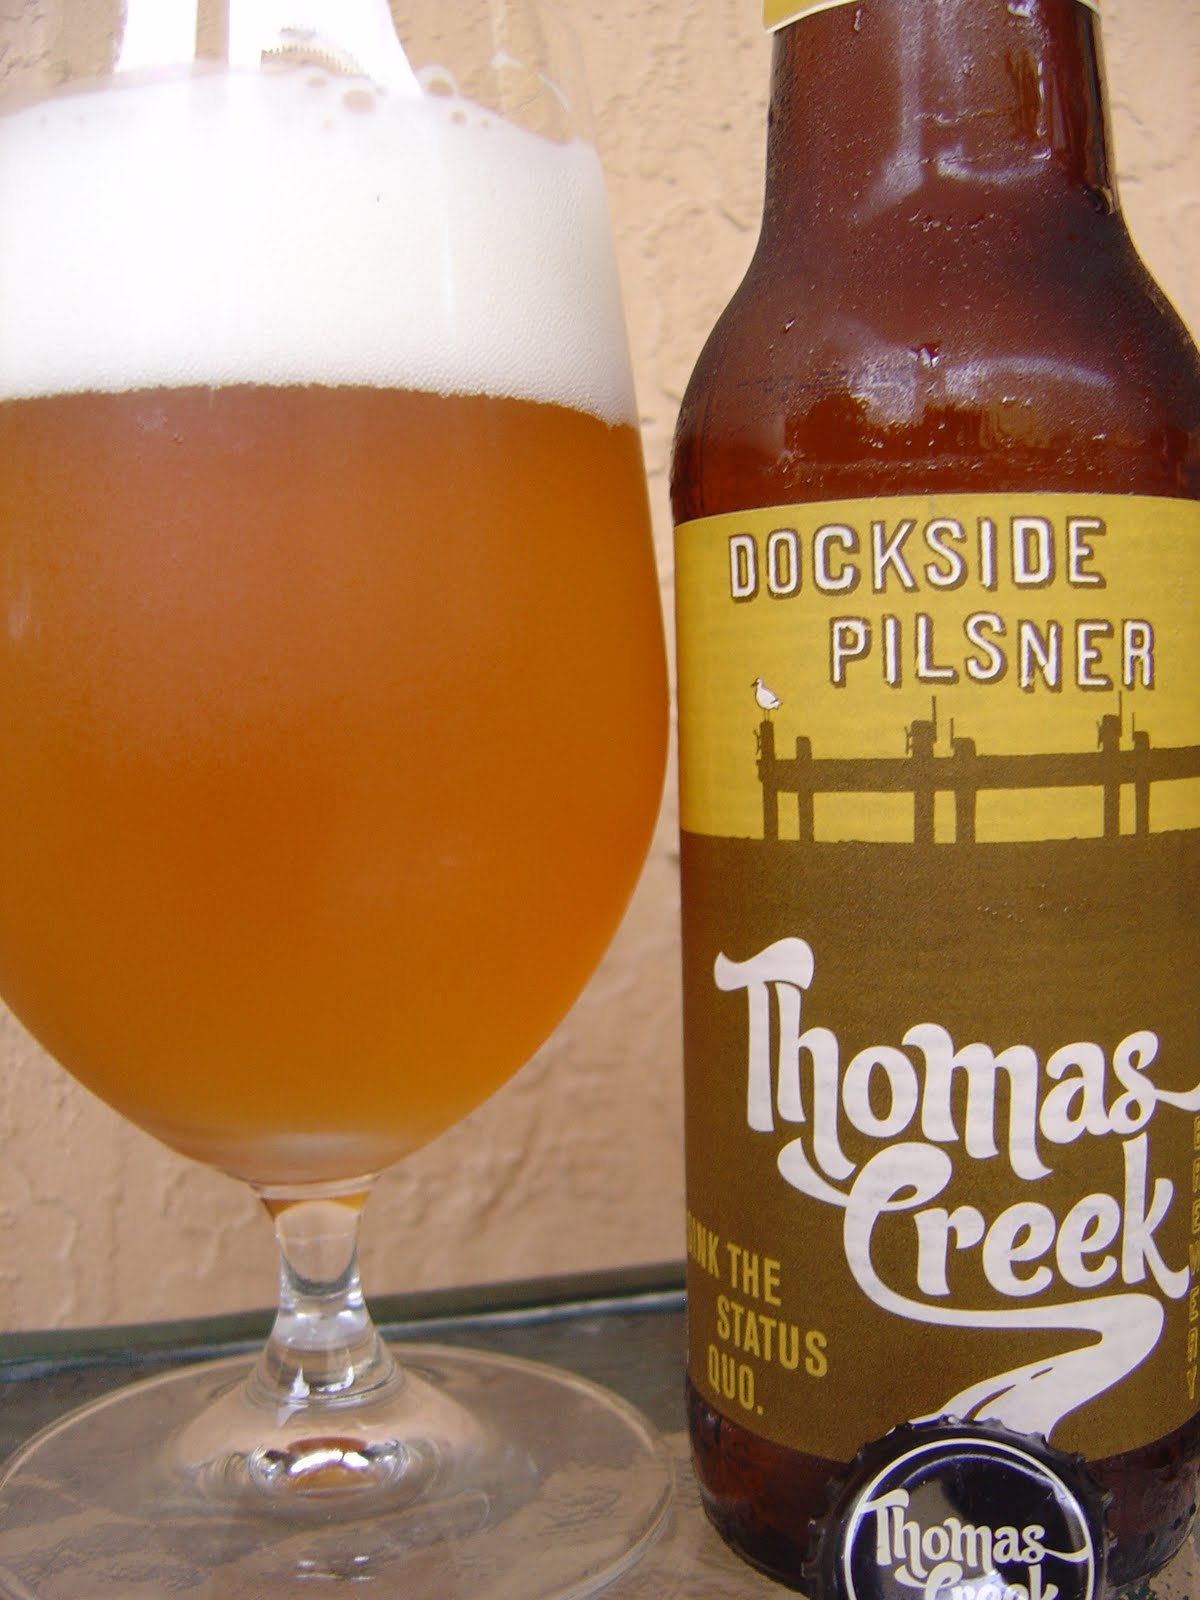 Thomas Creek Dockside PilsnerGreenville, SC